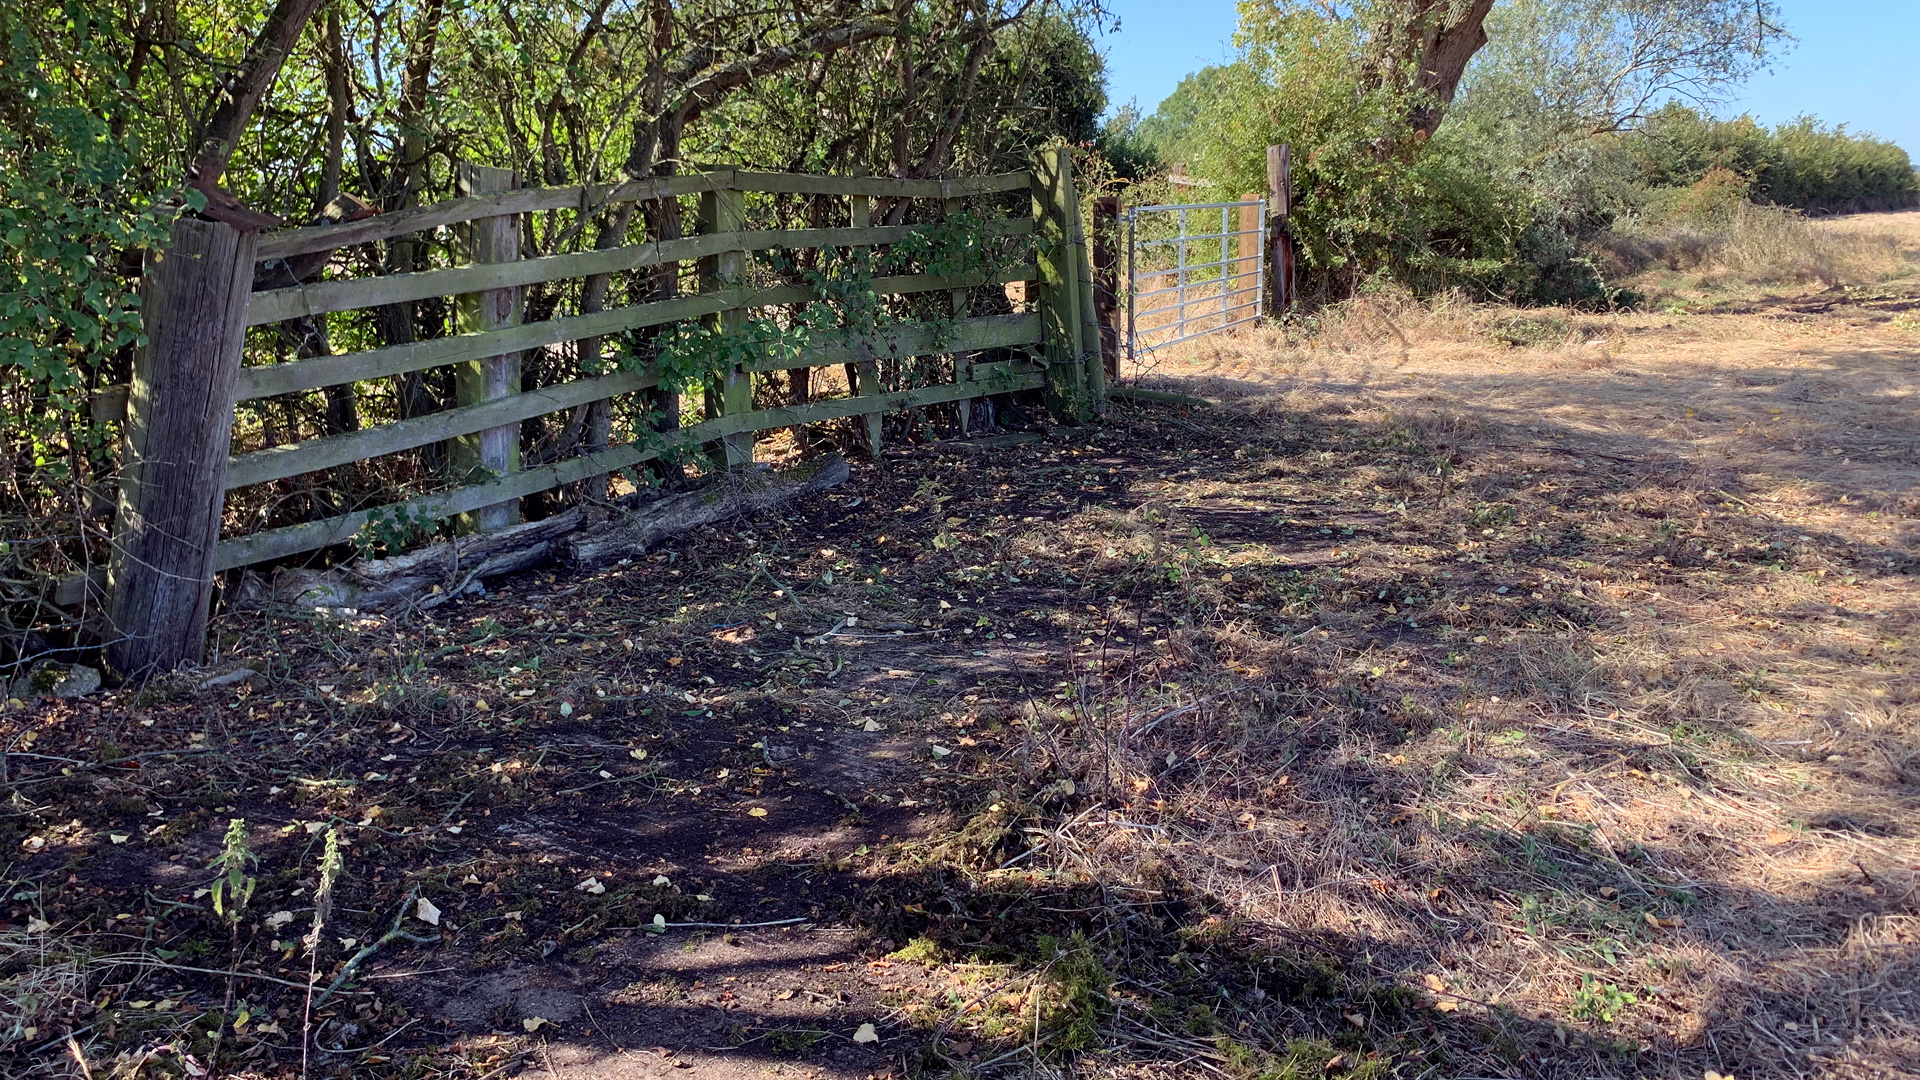 Land for sale at Draytonmead Farm hardstanding